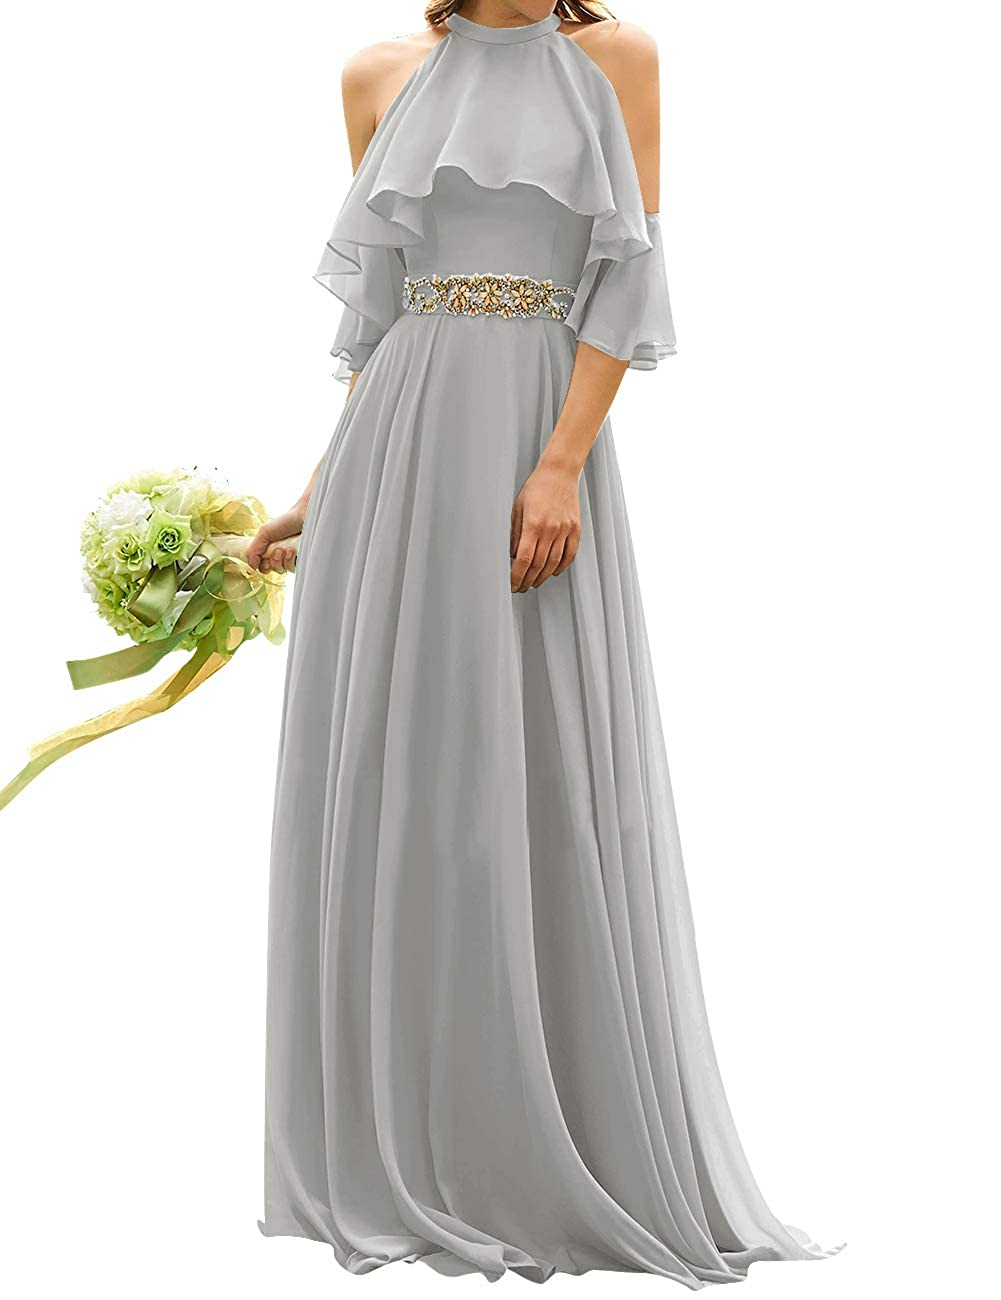 Silver Uther Long Bridesmaid Dress Cold Shoulder Beaded Ruffle Sleeves Wedding Party Dresses